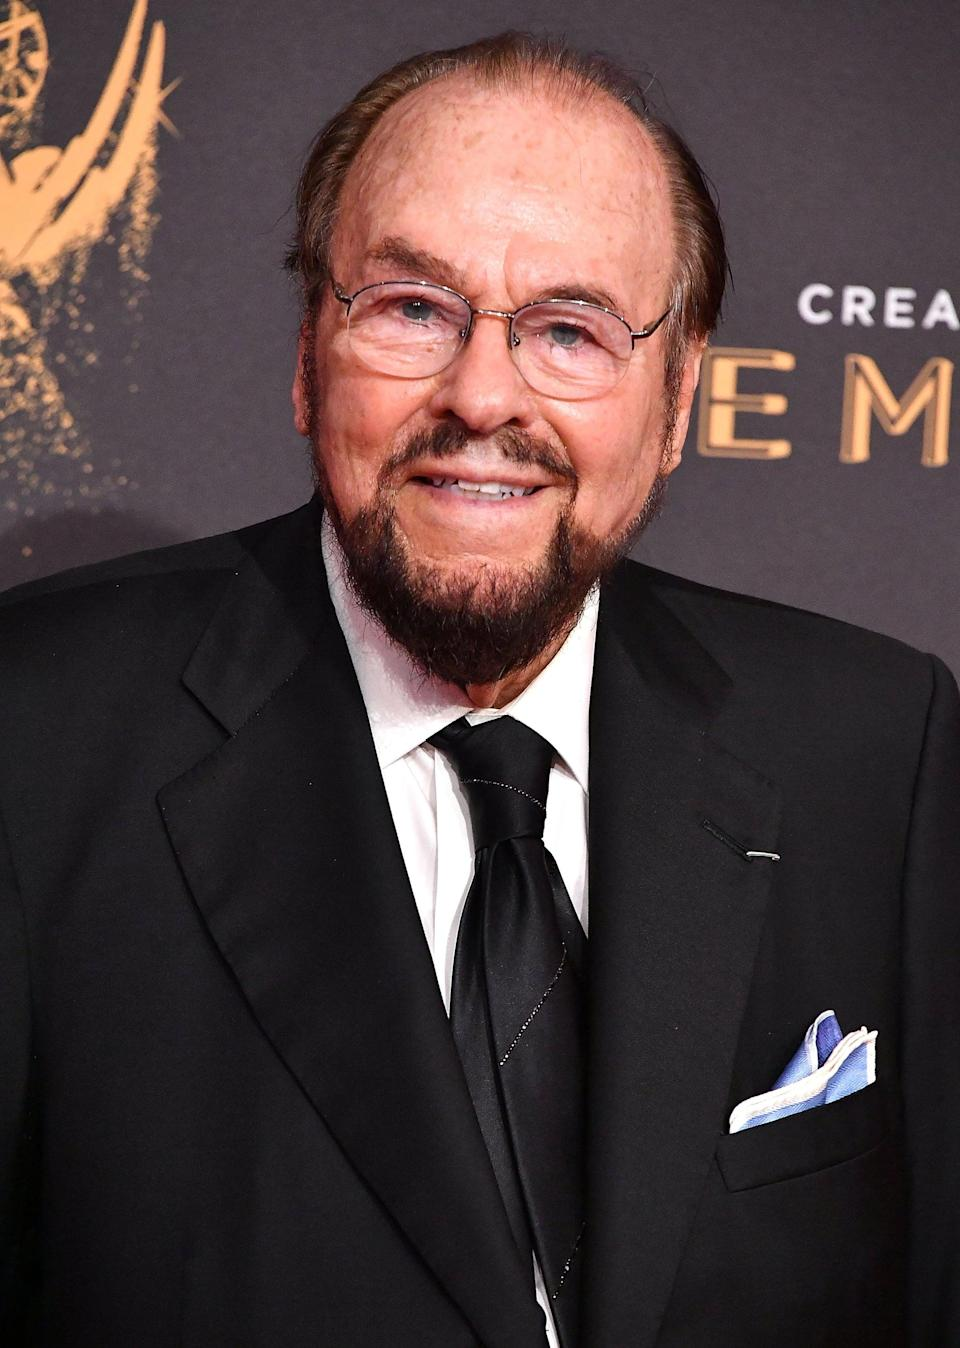 """<p>The longtime <b>Inside the Actor's Studio</b> host <a href=""""https://www.hollywoodreporter.com/news/james-lipton-dead-actors-studio-909382"""" class=""""link rapid-noclick-resp"""" rel=""""nofollow noopener"""" target=""""_blank"""" data-ylk=""""slk:died at age 93"""">died at age 93</a> in March after a battle with bladder cancer. </p>"""